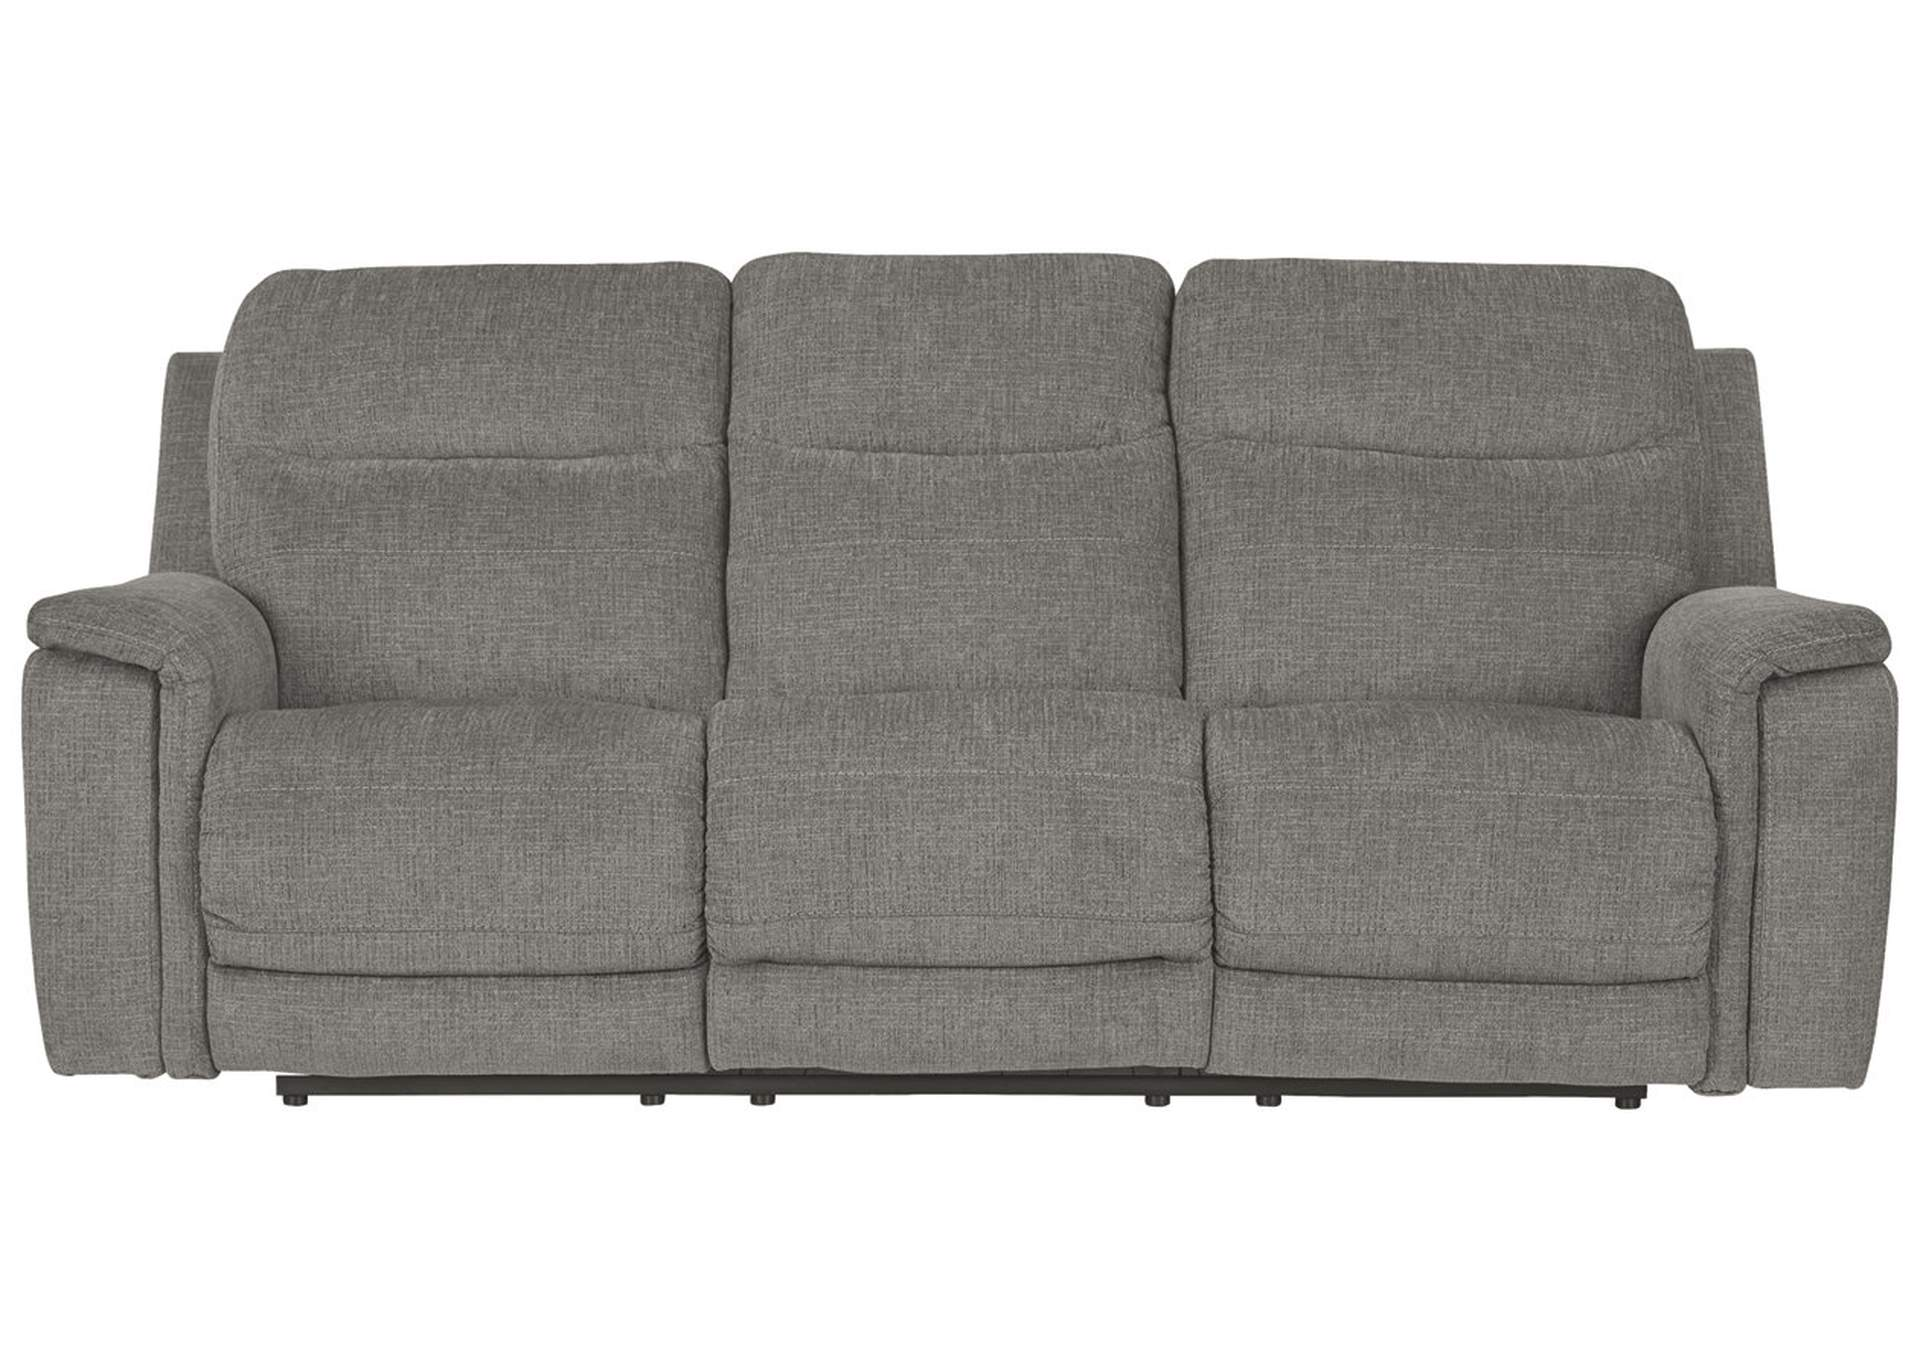 Mouttrie Smoke Power Reclining Sofa,Signature Design By Ashley